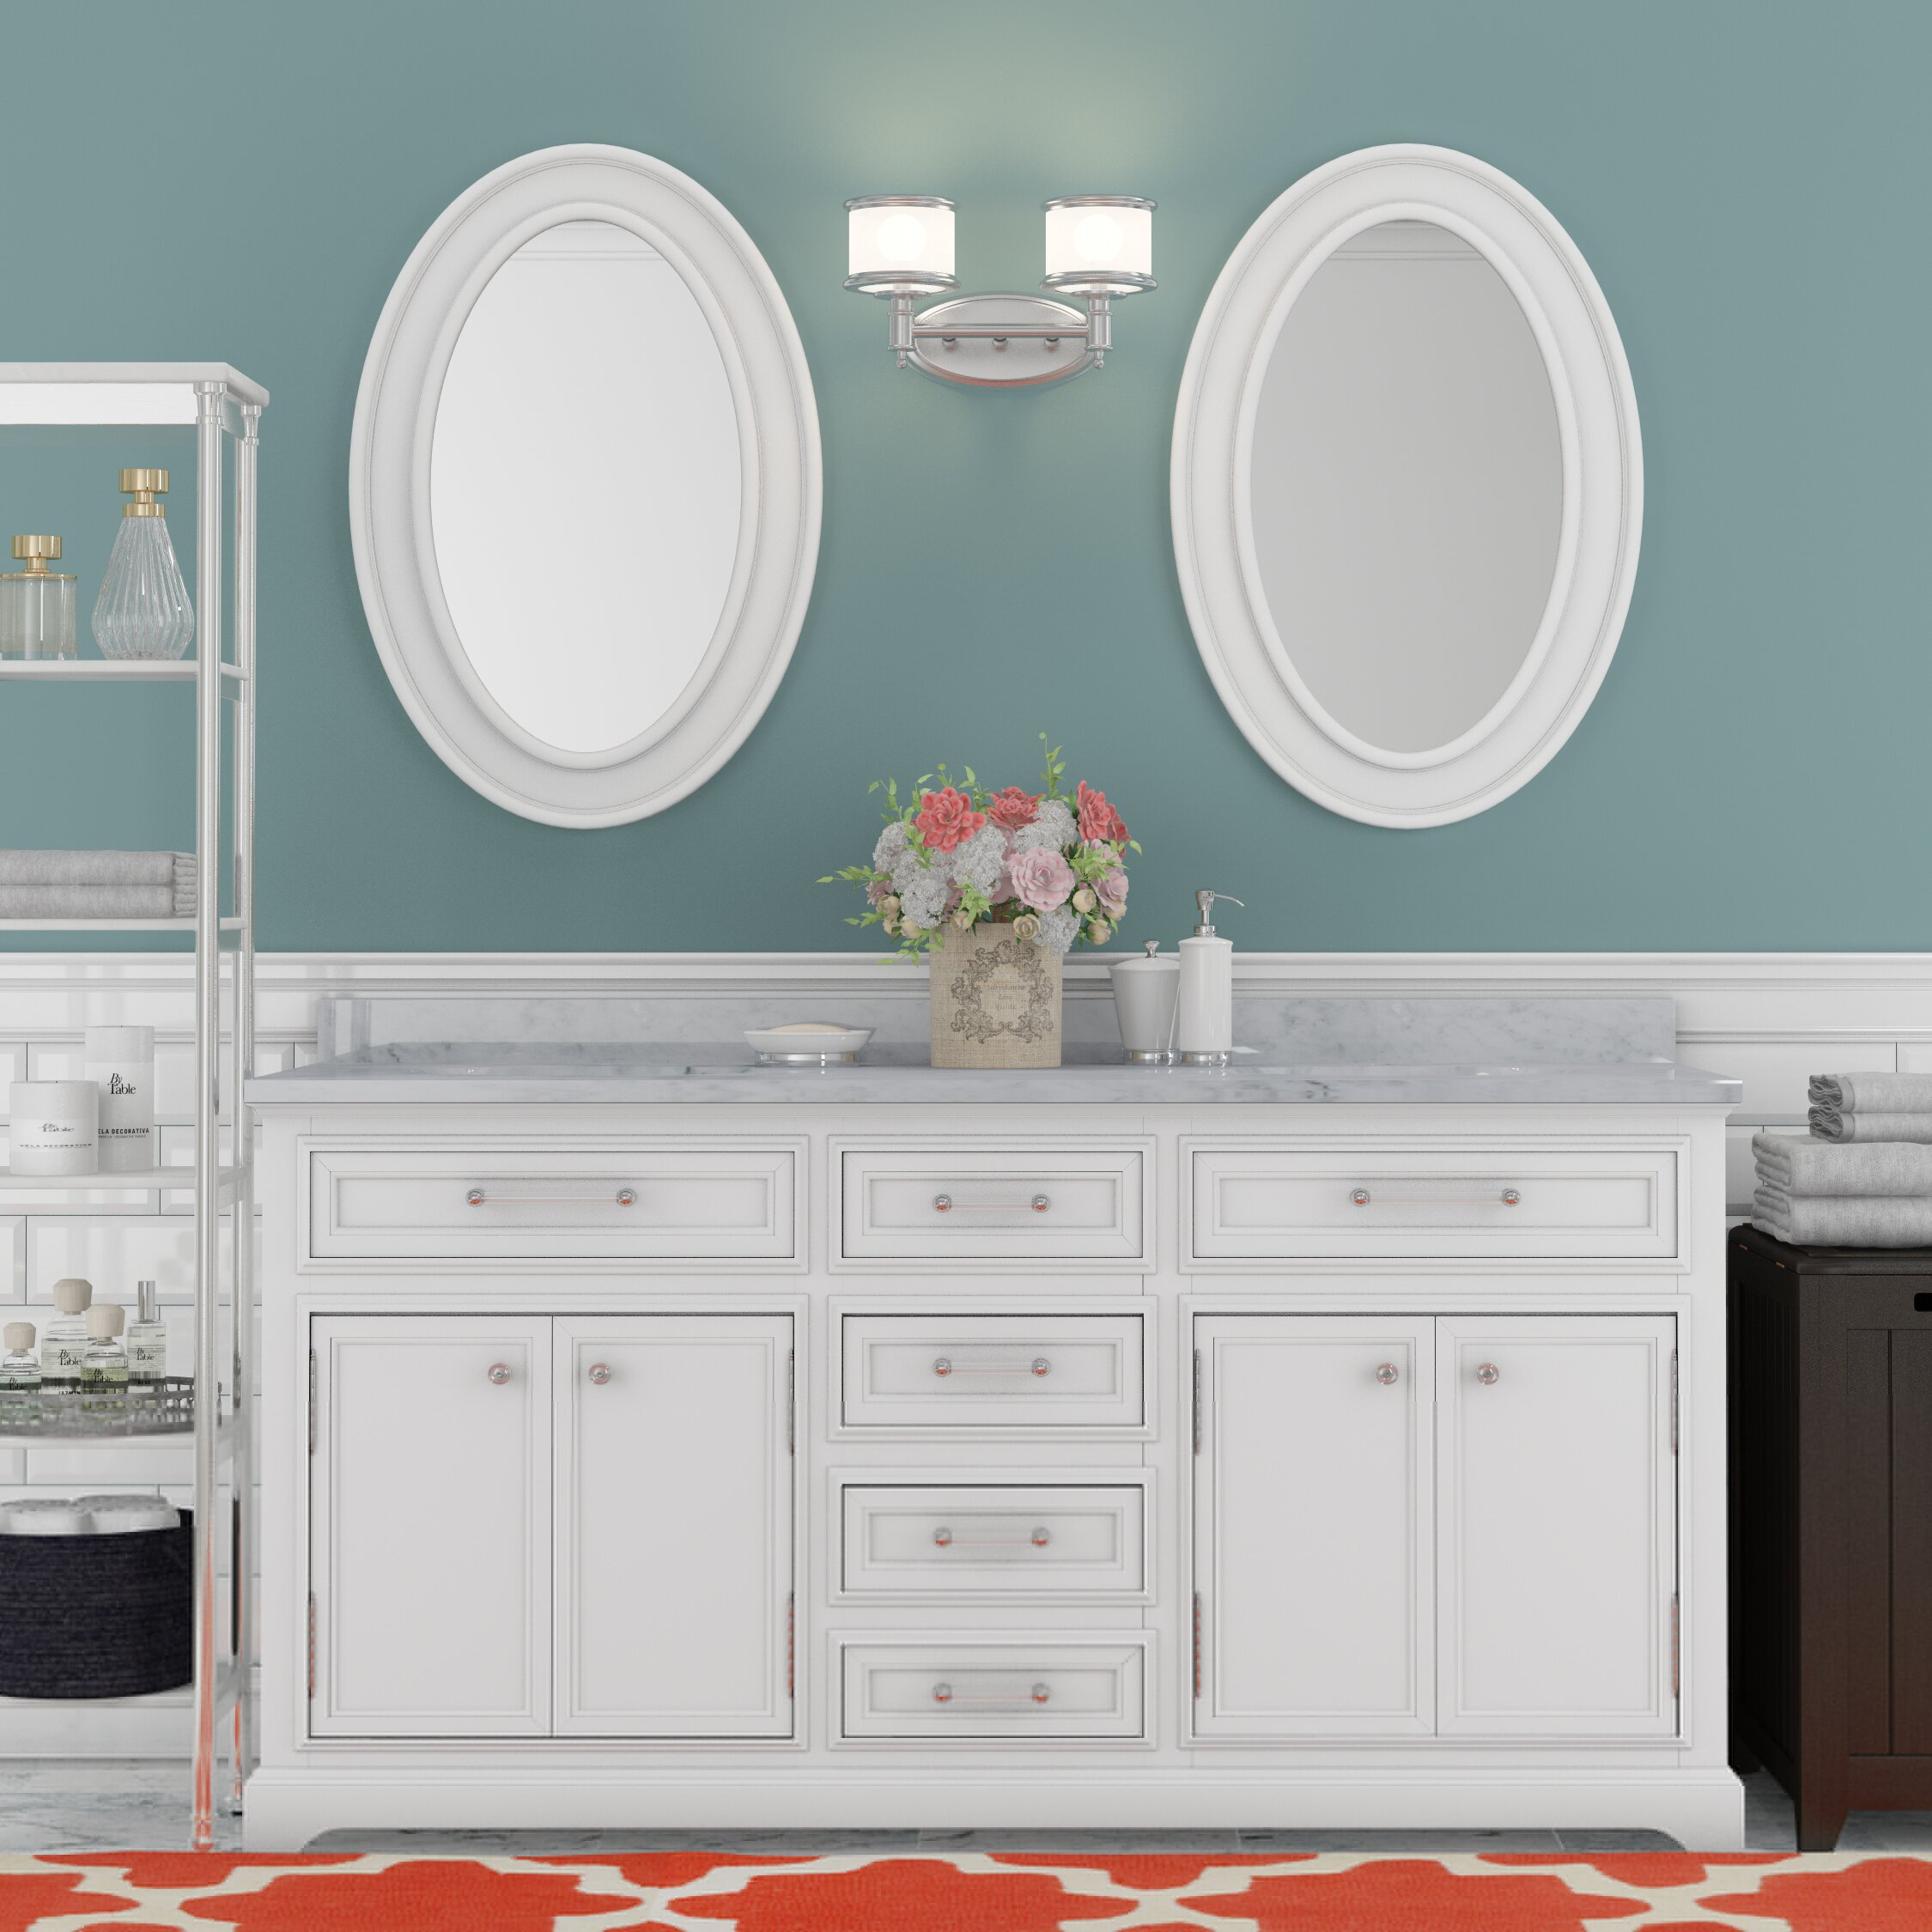 white double sink bathroom darby home coampreg colchester ampquot double sink bathroom vanity set with mirror white